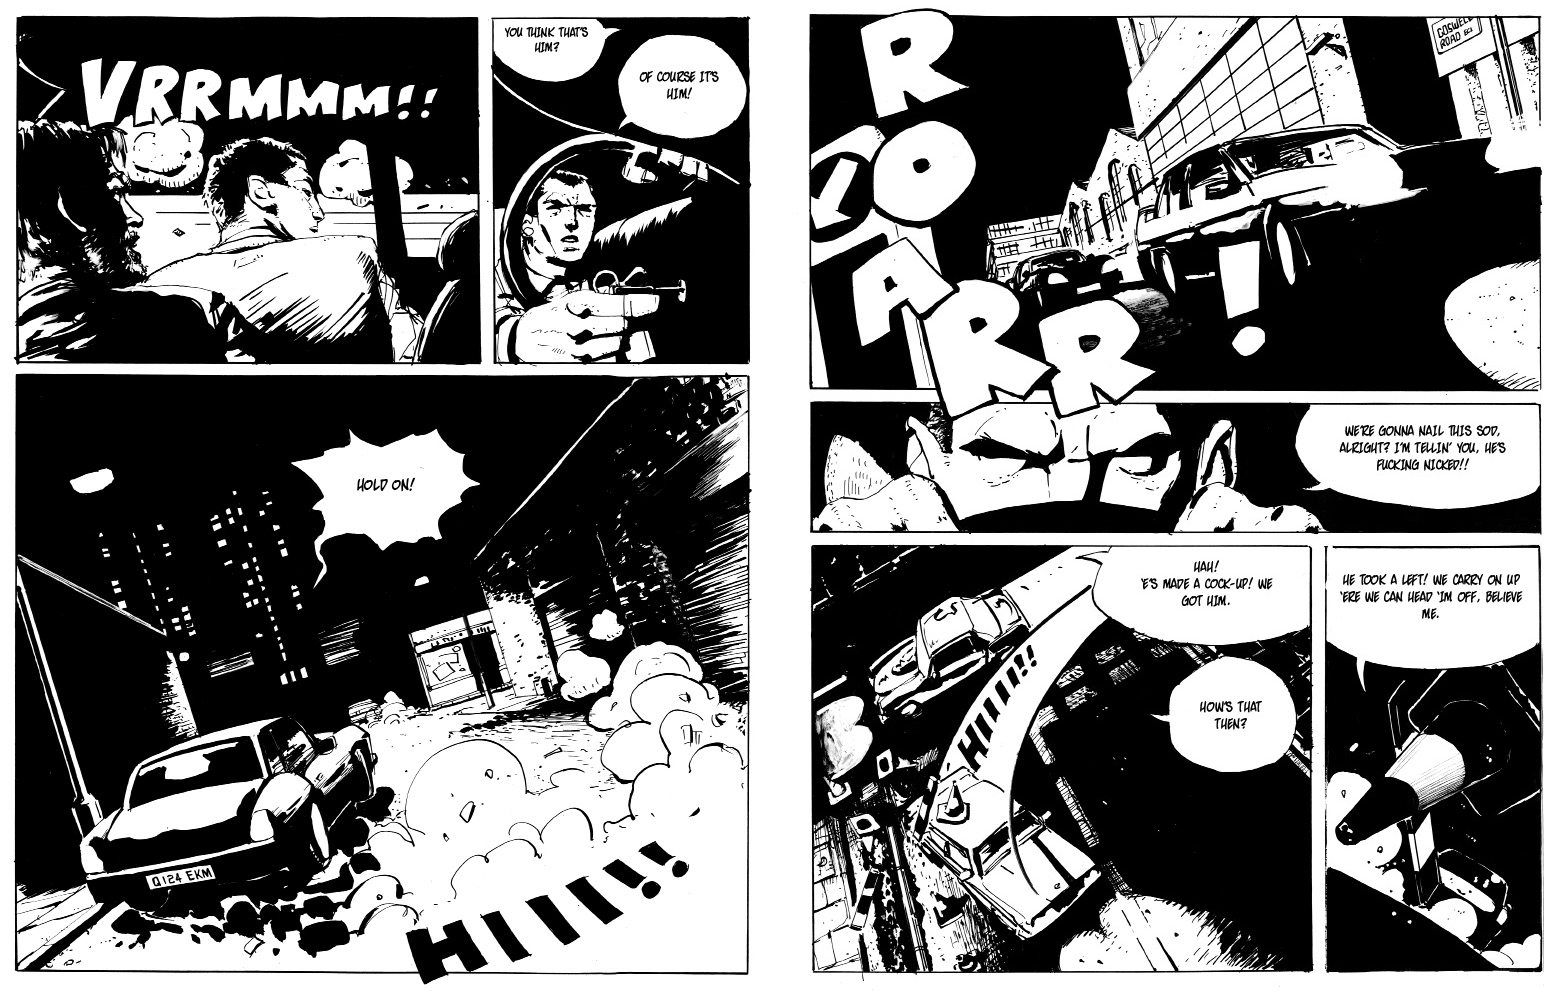 London Inferno (Final)_ENGLISH_roger mason_pages 10 - 11_noir comics_police comics_crime_frank miller